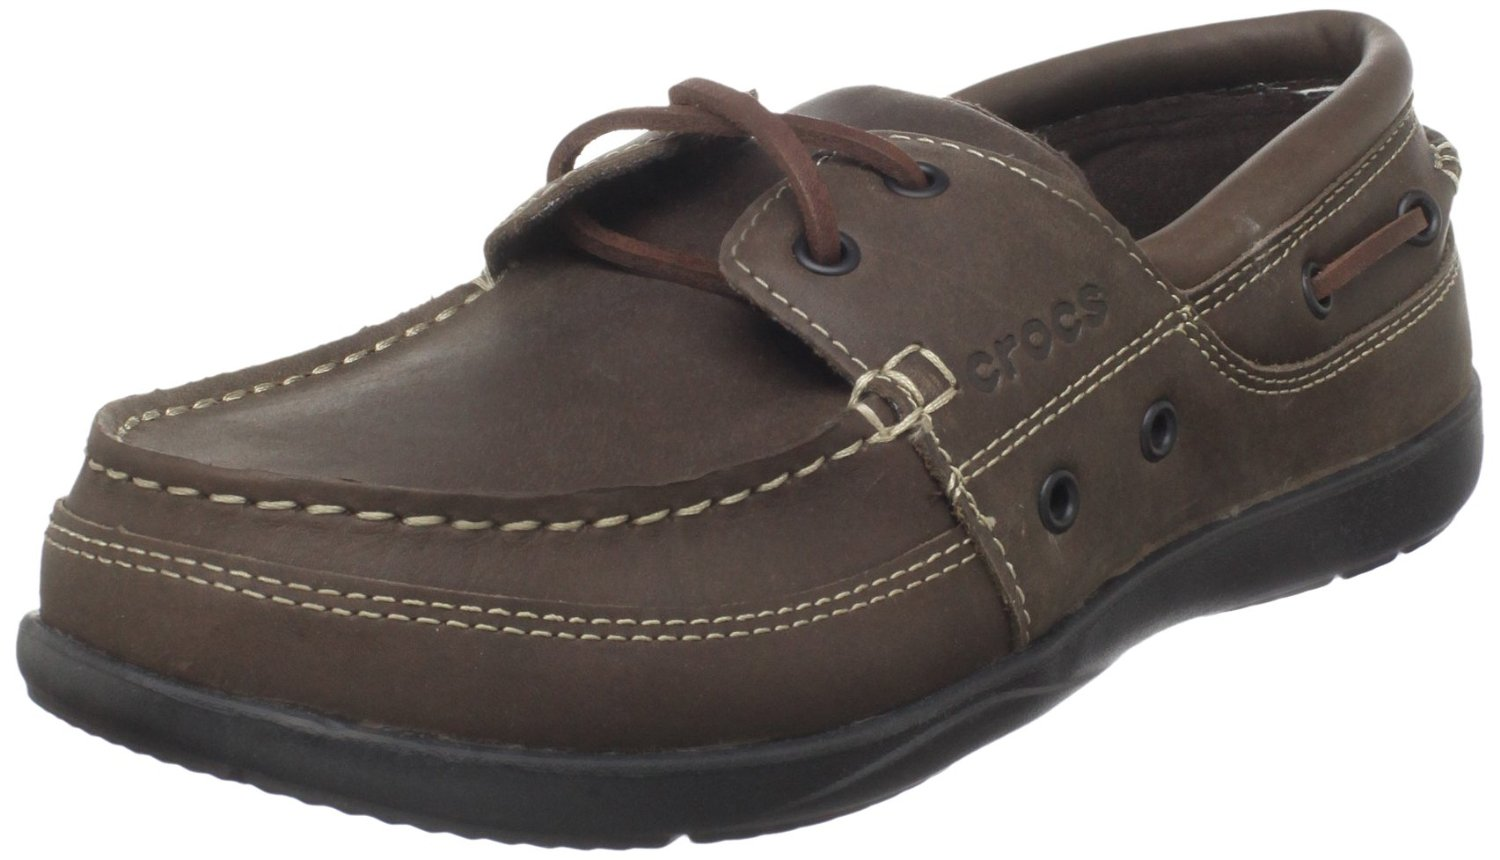 Good Price Boating Shoes